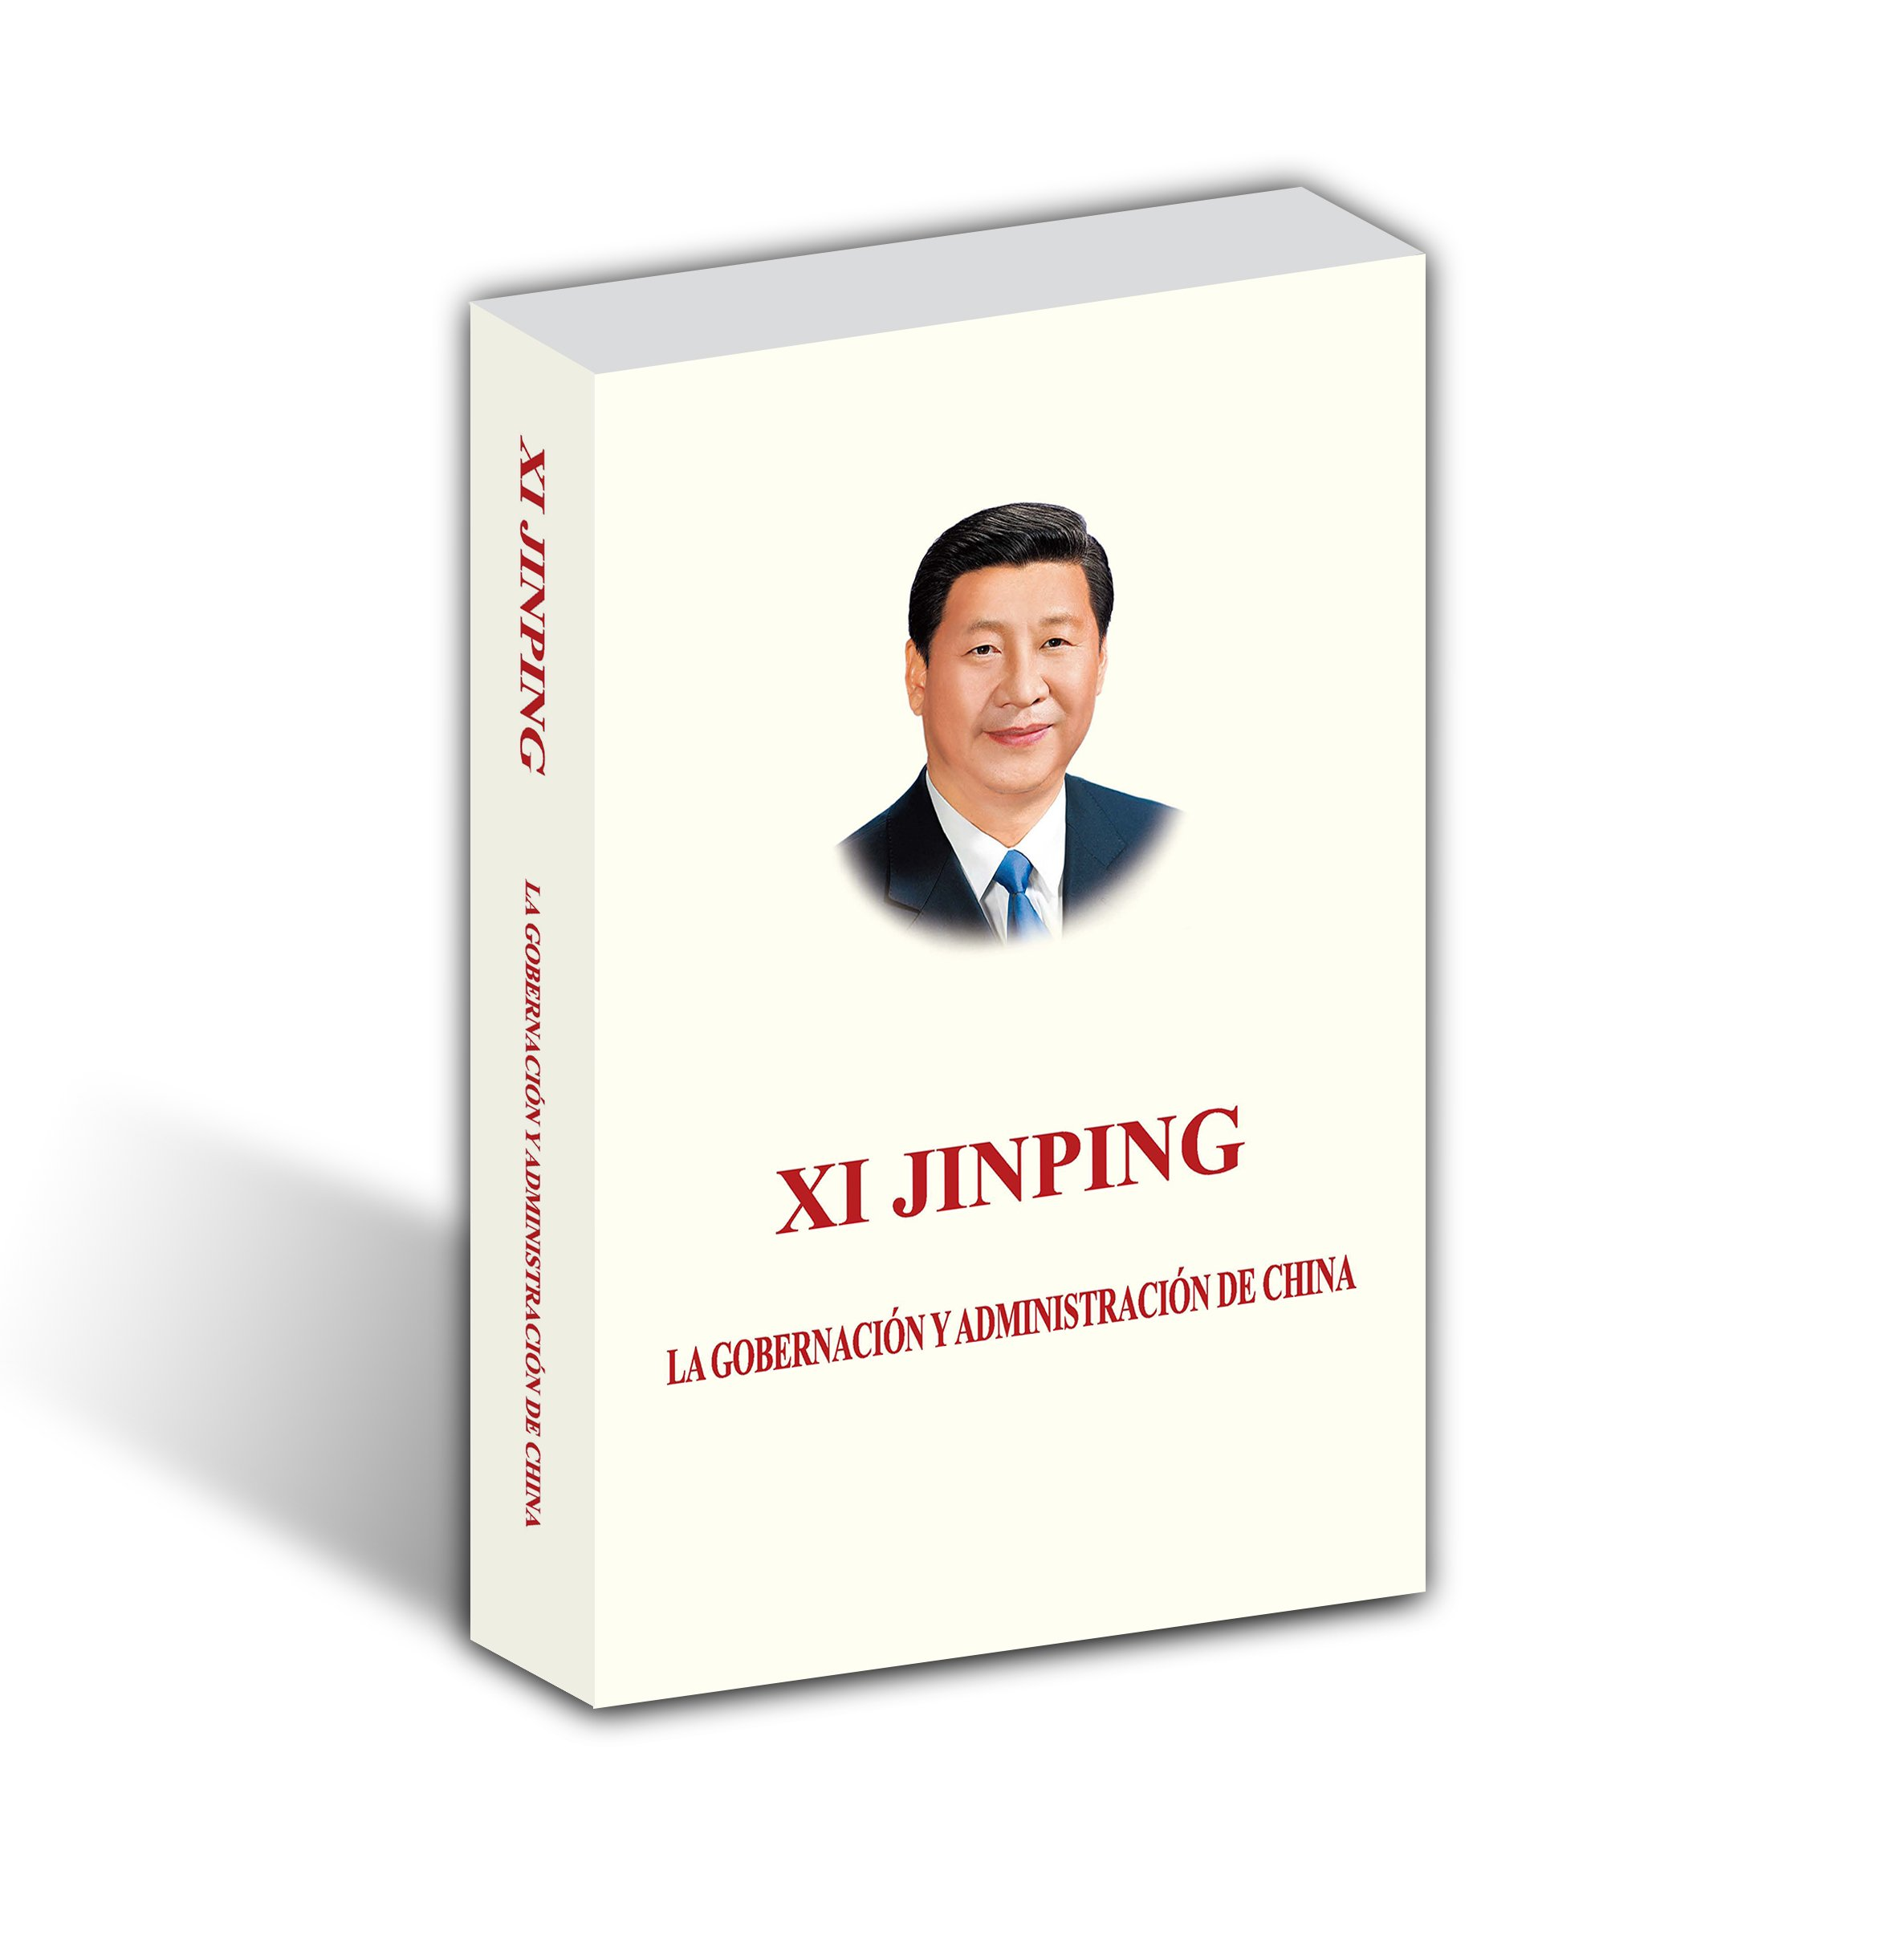 XI JINPINGTHE GOVERNANCE OF CHINA Spanish Version (Spanish Edition): Xi  Jinping: 9787119090597: Amazon.com: Books